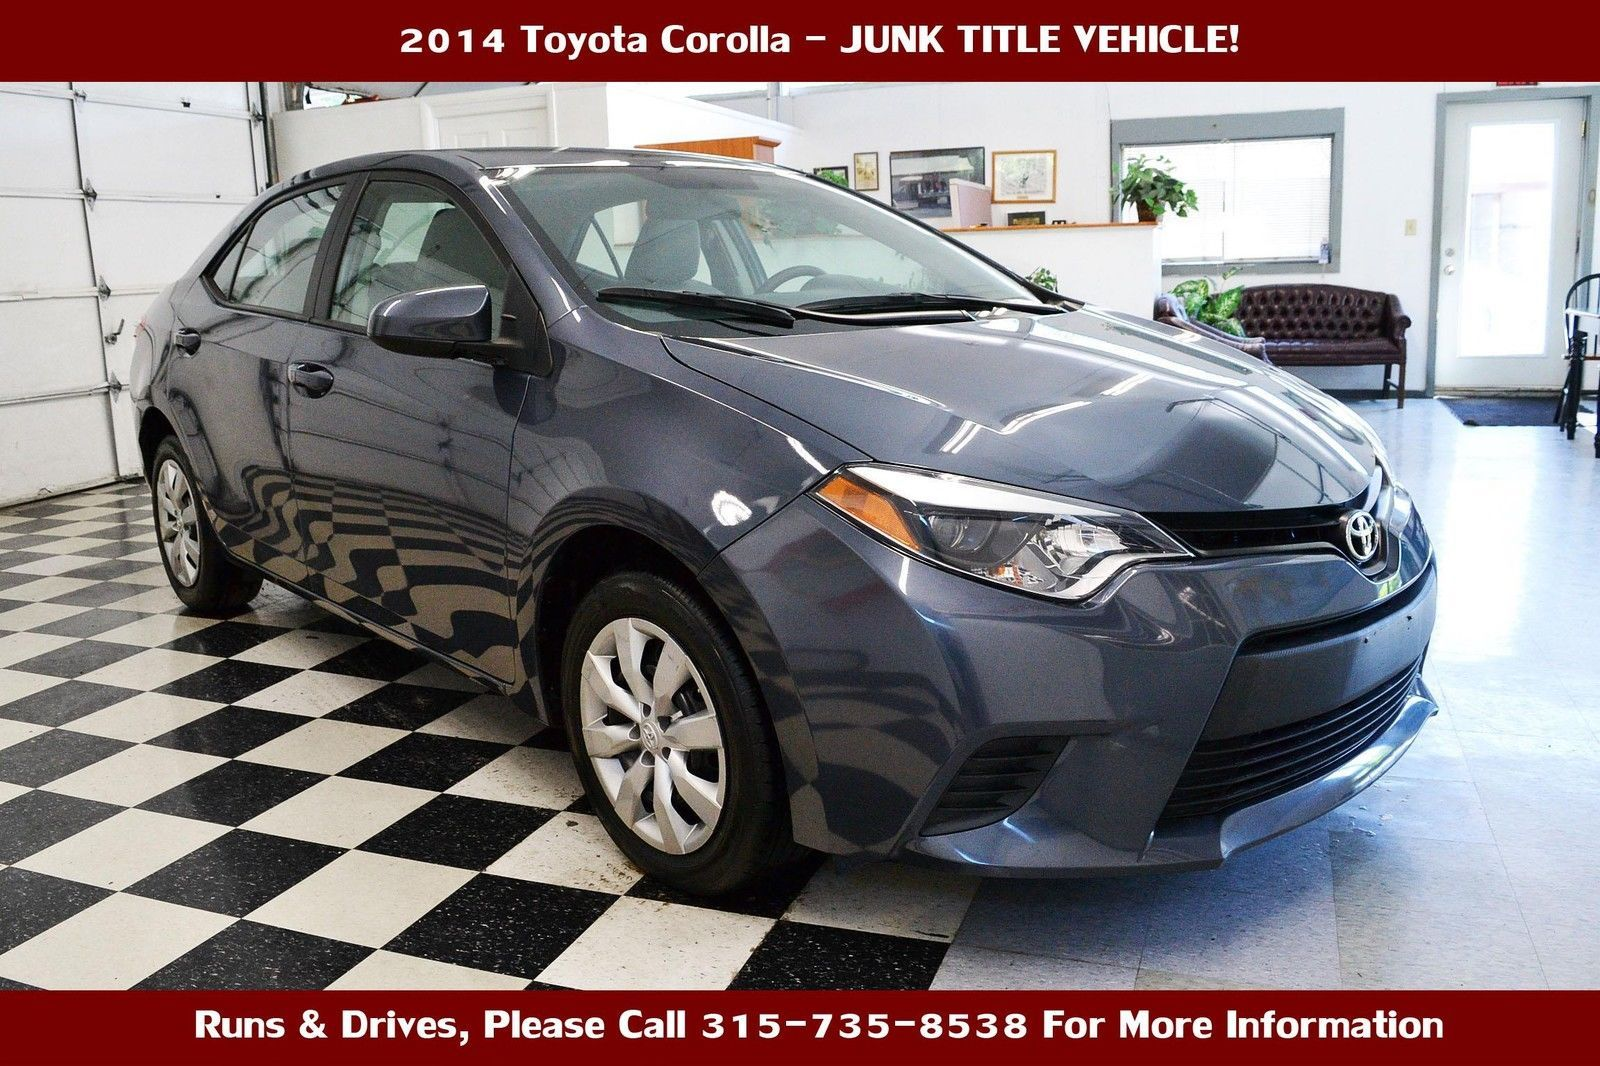 Nice Toyota 2017: 2014 Toyota Corolla NO RESERVE JUNK TITLE 2014 Toyota Corolla Junk Title Car Repairable Damaged Wrecked